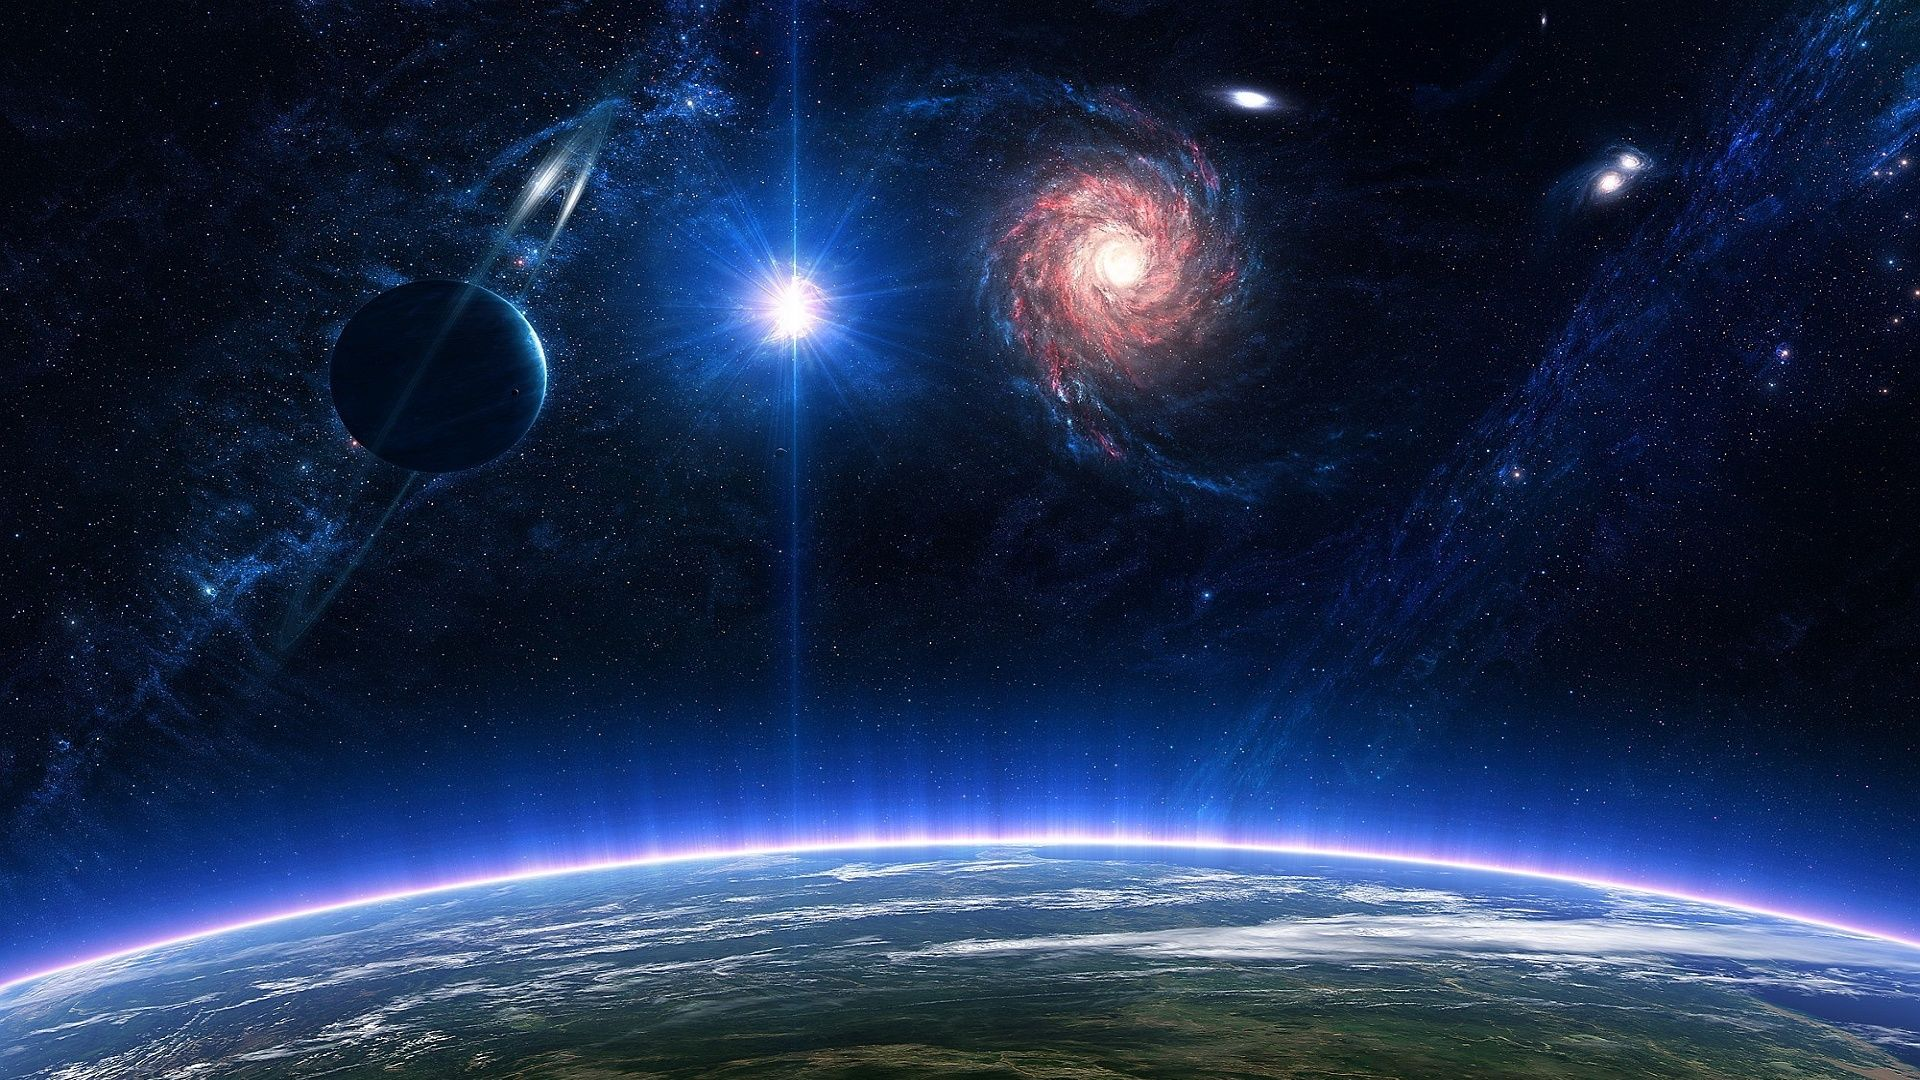 1920x1080 Galaxy Space Wallpapers | Wallpapers | Pinterest ...